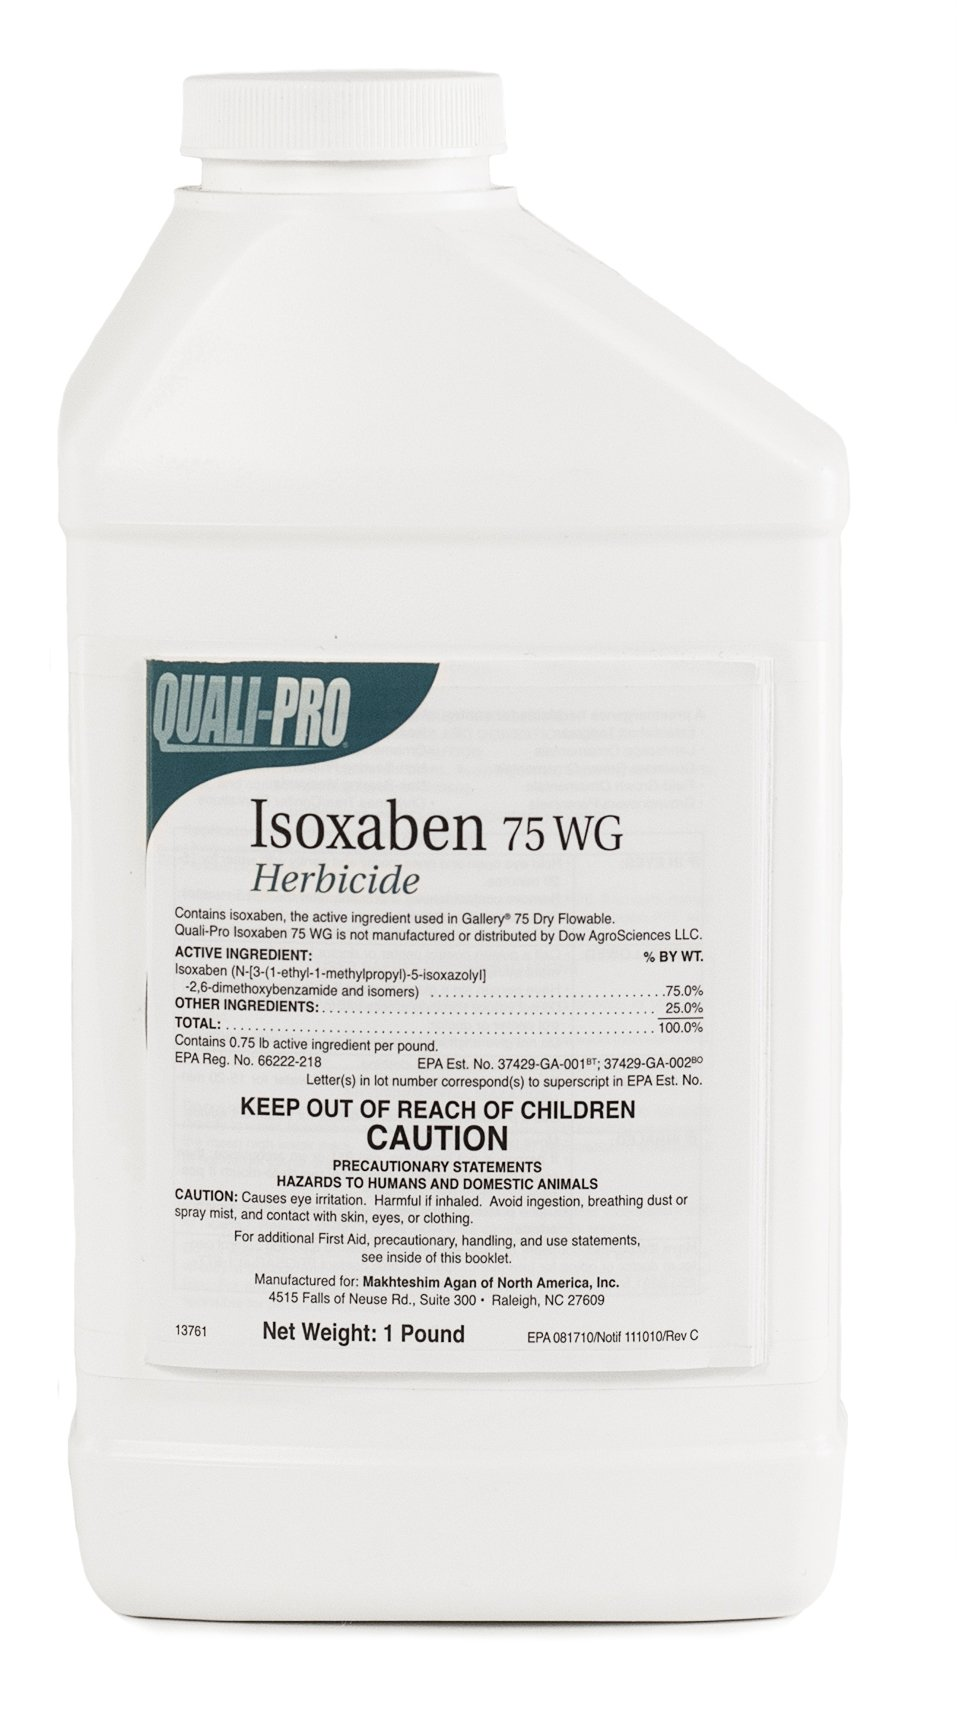 Isoxaben 75WG Pre-Emergent Herbicide for Lawn & Landscape 1 lb replaces Gallery by ITS Supply